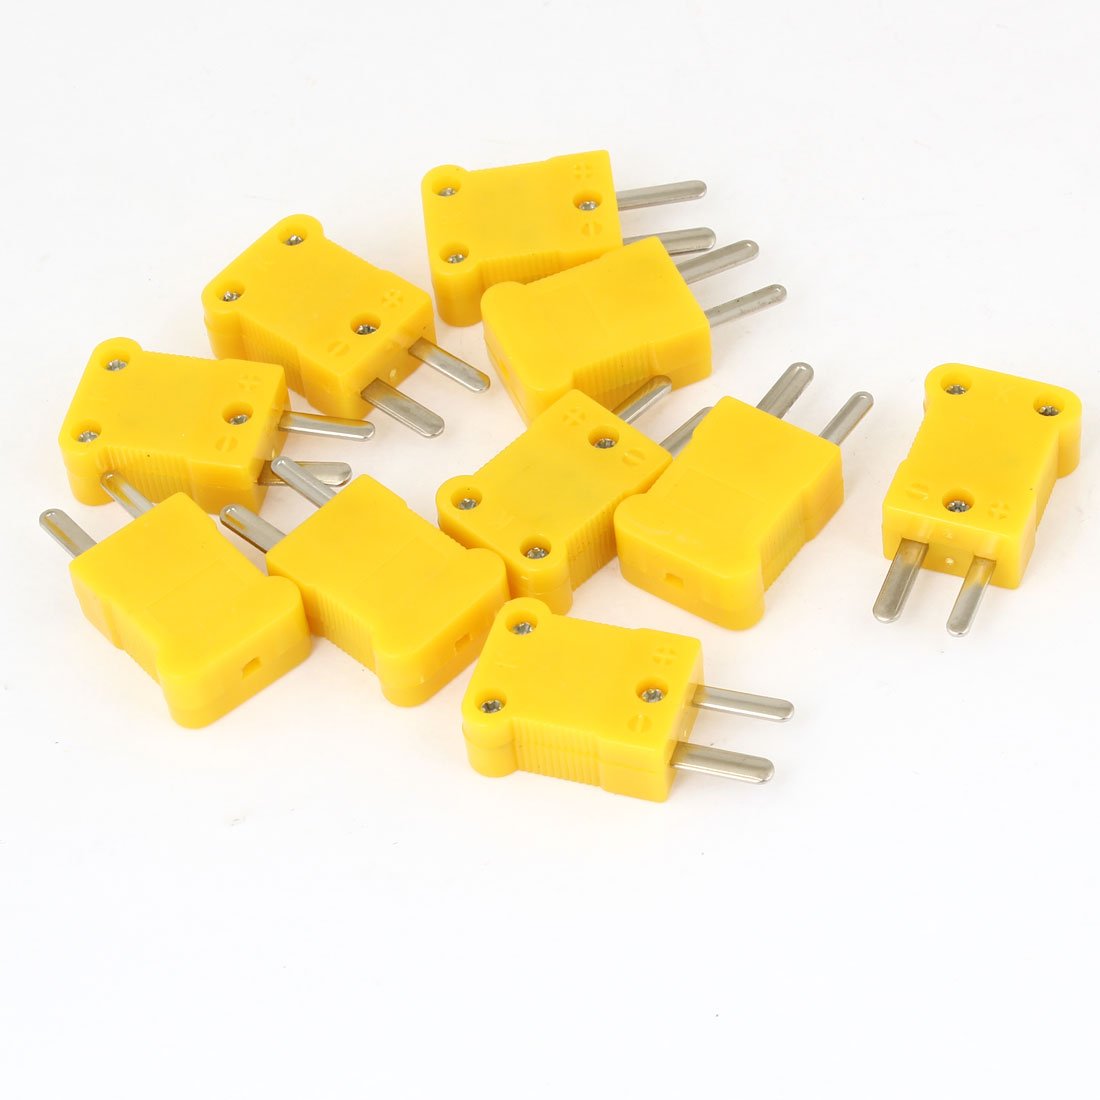 10Pcs 22mm x 18mm x 9mm Yellow Casing 2-Terminal Thermocouple Socket